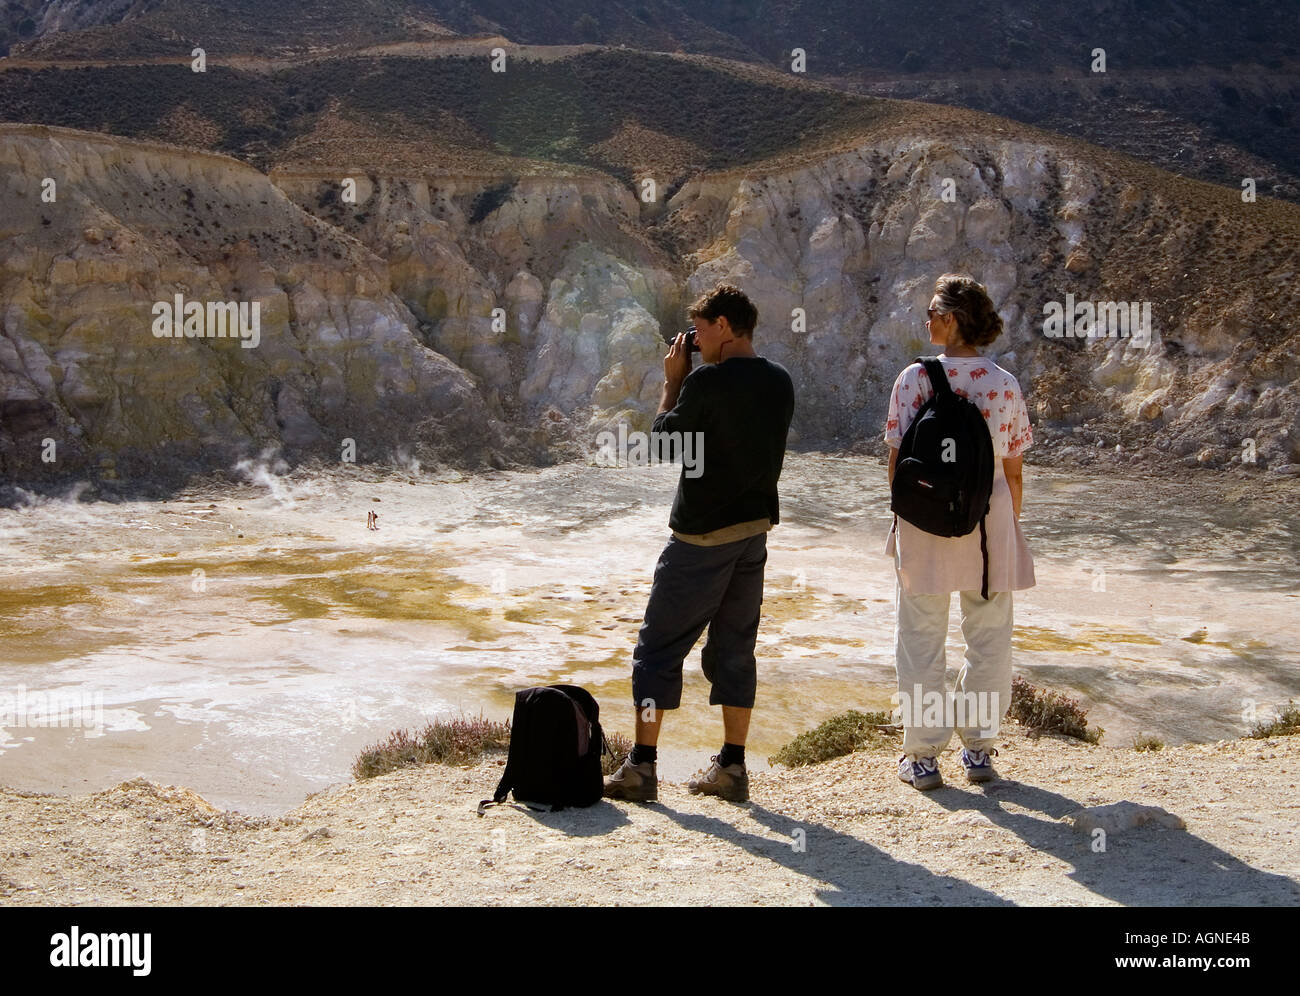 dh Stefanos volcano LAKKI PLATEAU GREECE NISYROS Man and woman couple tourists looking down into semi active volcano - Stock Image